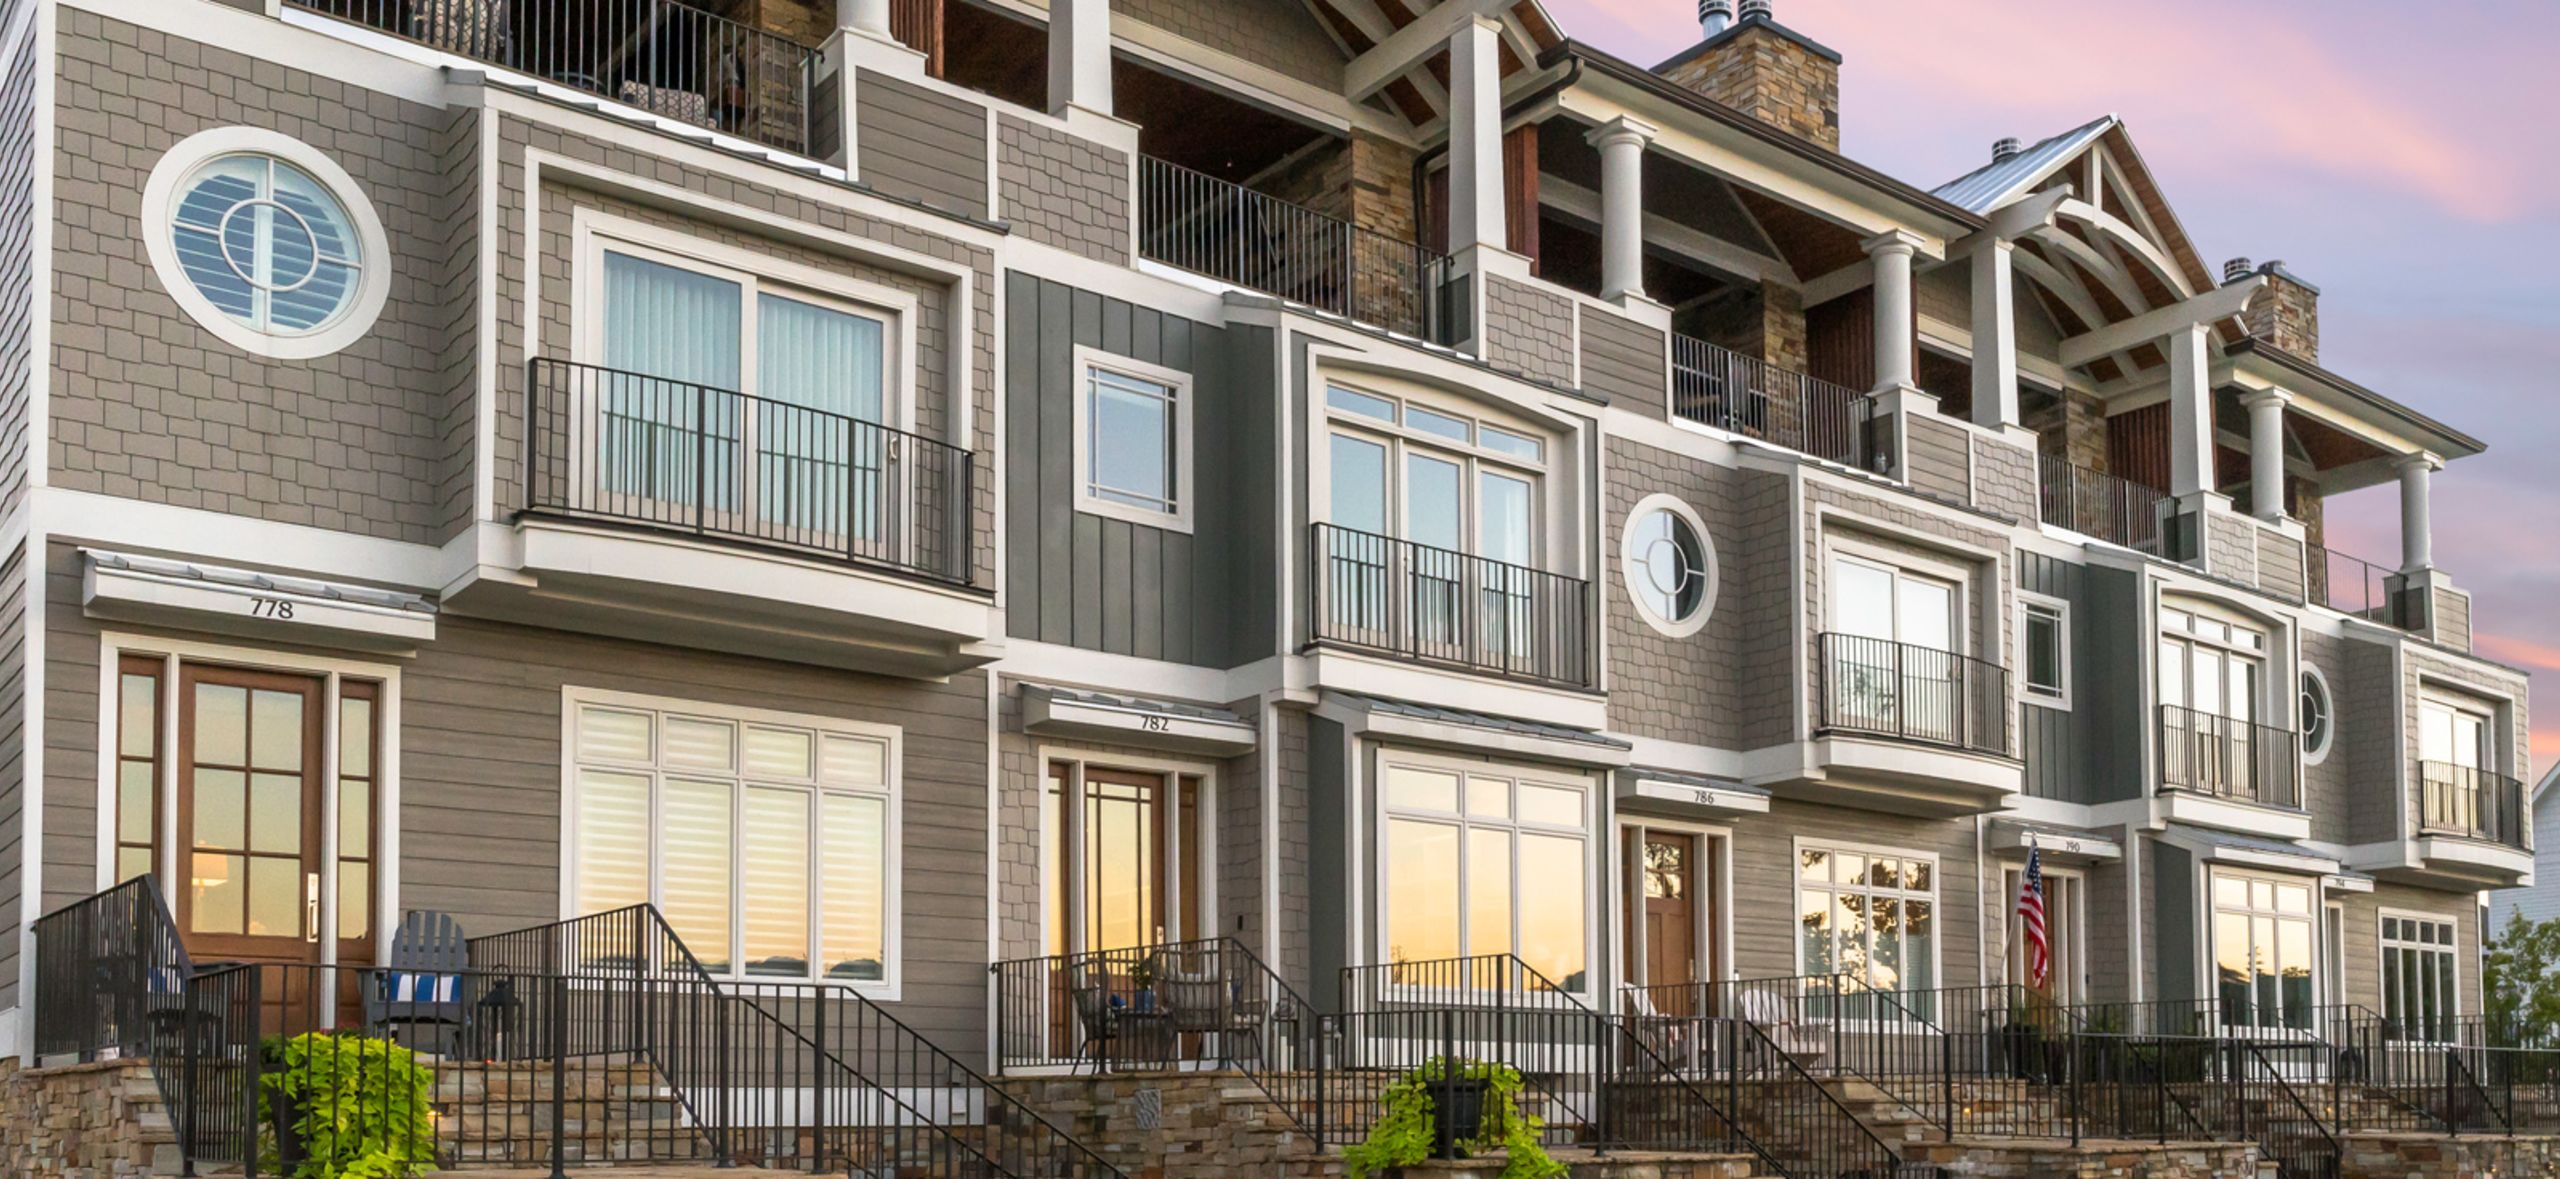 Tennessee Coastal Design from River Street Architecture and Dexter White Construction